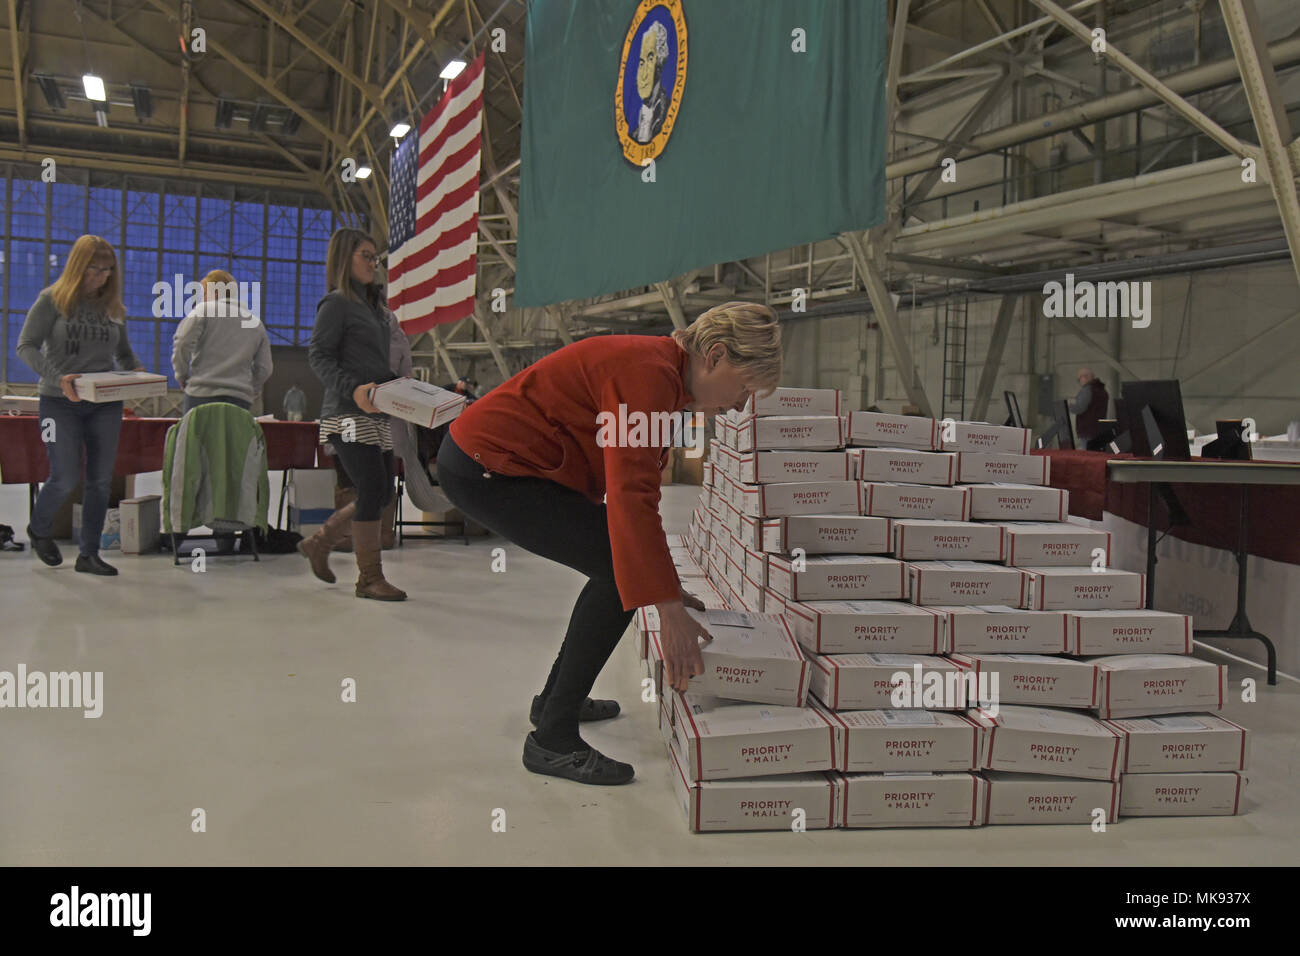 Team Fairchild volunteers stack completed Treats 2 Troops care packages Nov. 29, 2017, at Fairchild Air Force Base, Washington. KREM 2 News partnered with Team Fairchild for the seventh year in a row to fill care packages with small treats and gifts such as sunflower seeds, chewing gum, hand sanitizer, homemade knit hats and holiday cards made by local schools. (U.S. Air Force photo/Senior Airman Mackenzie Richardson) - Stock Image